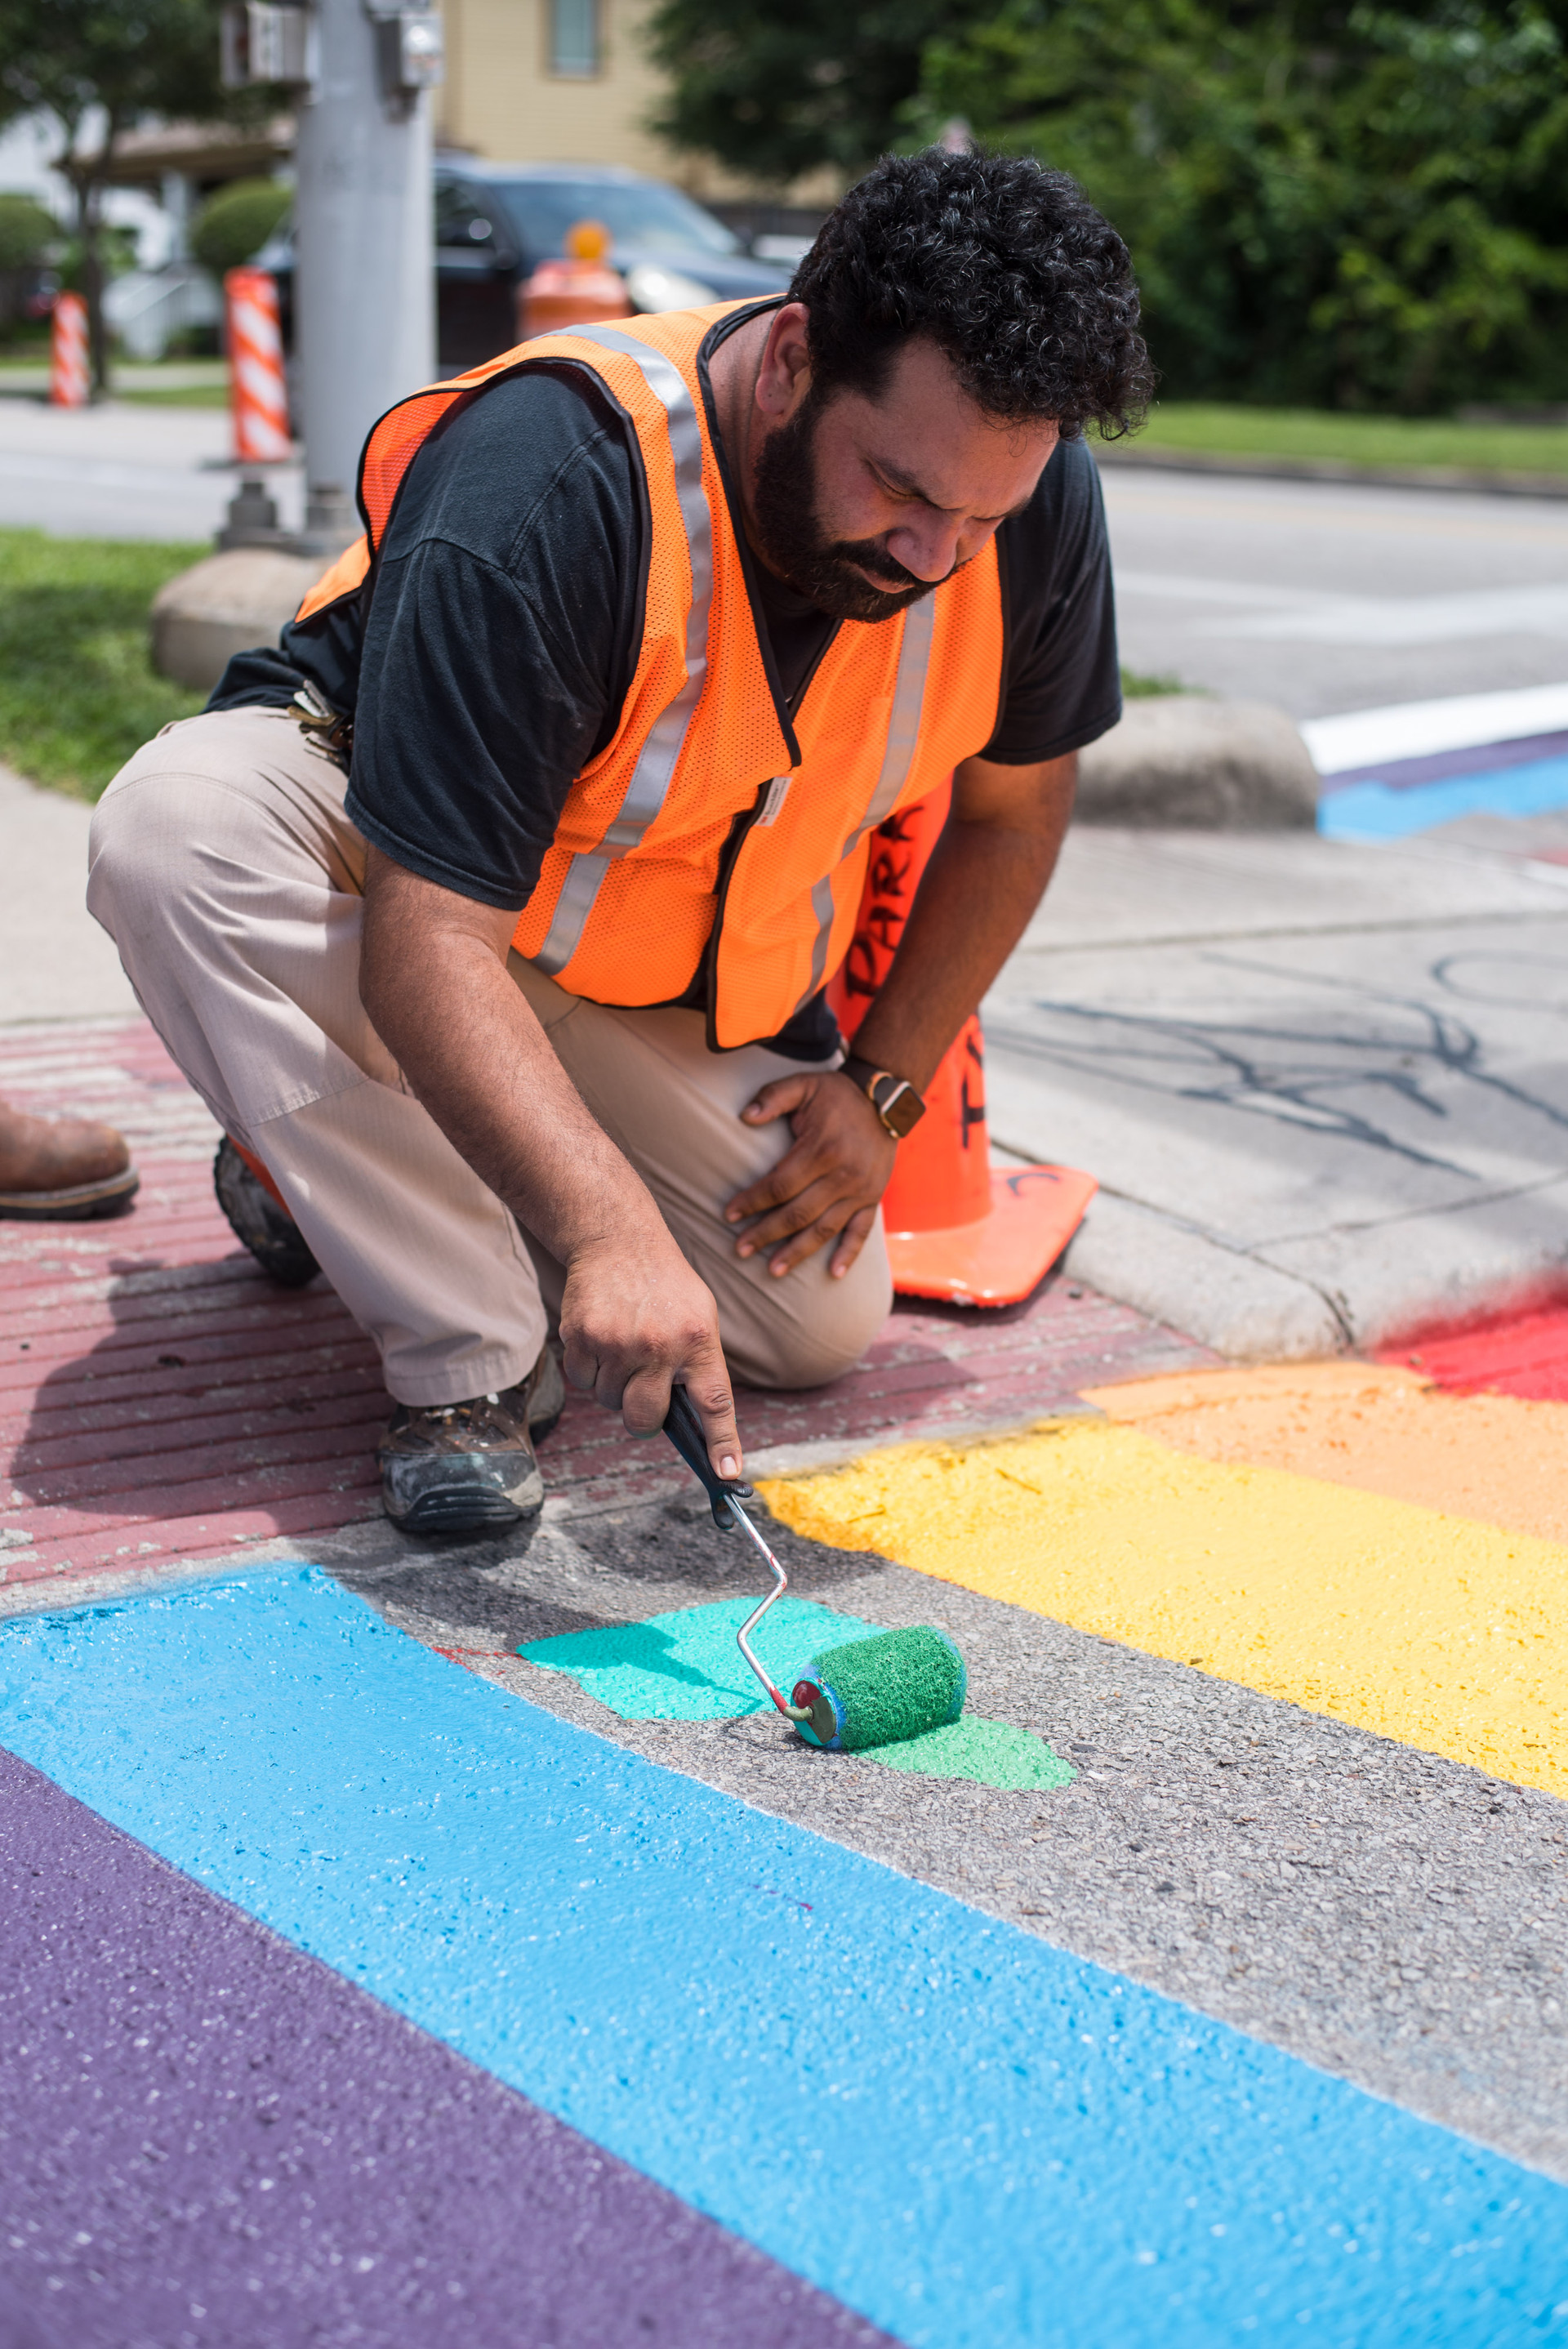 Up Art Studio painting Houston's first pride crosswalk is a memorial for Alex Hill who was killed in a hit and run at this intersection. It simultaneously serves as a symbol for diversity and traffic safety.